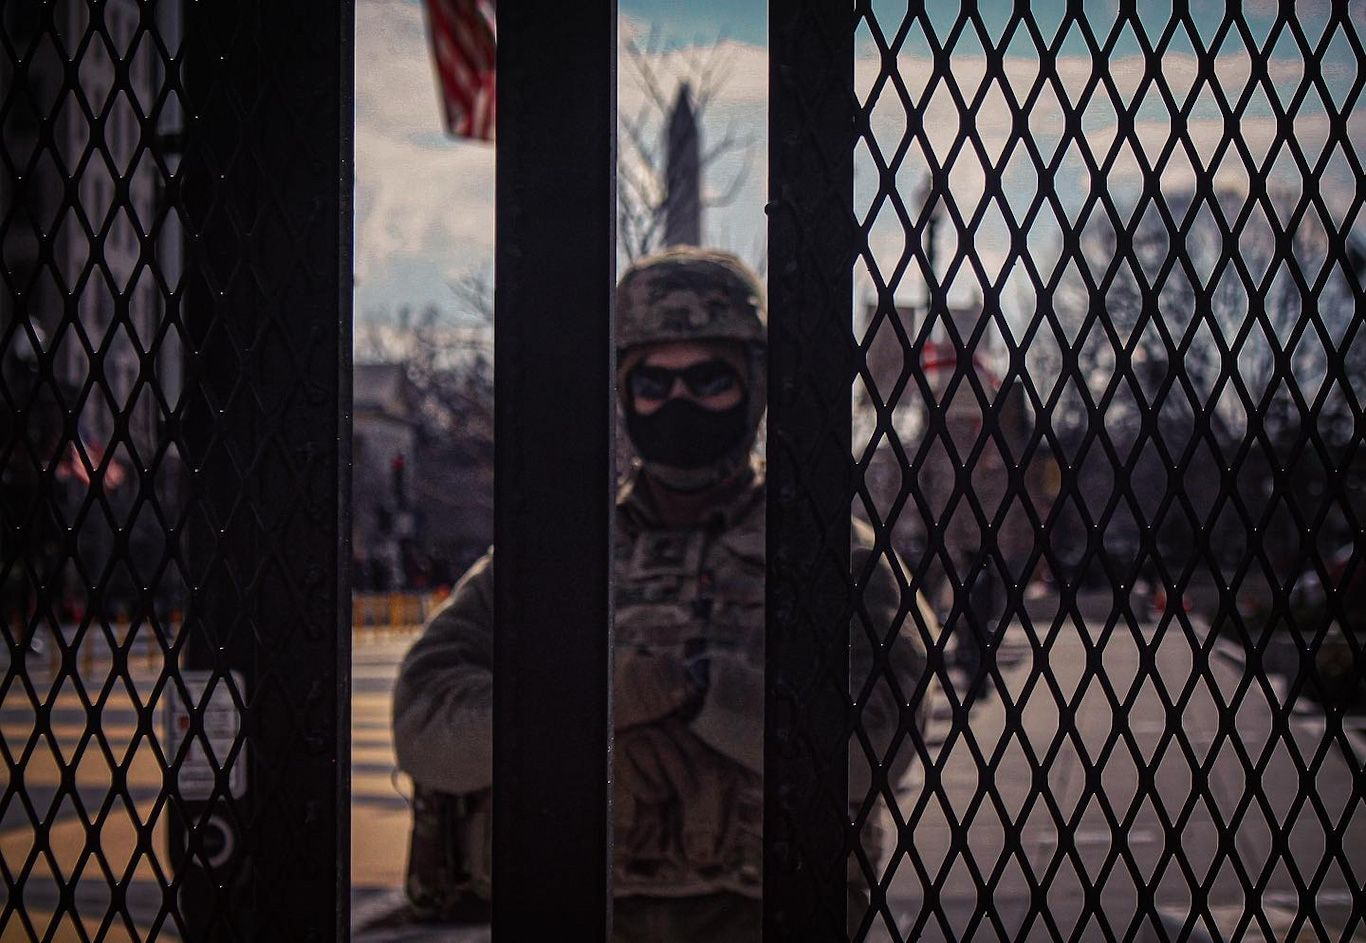 military police stan behind metal gates on inauguration day